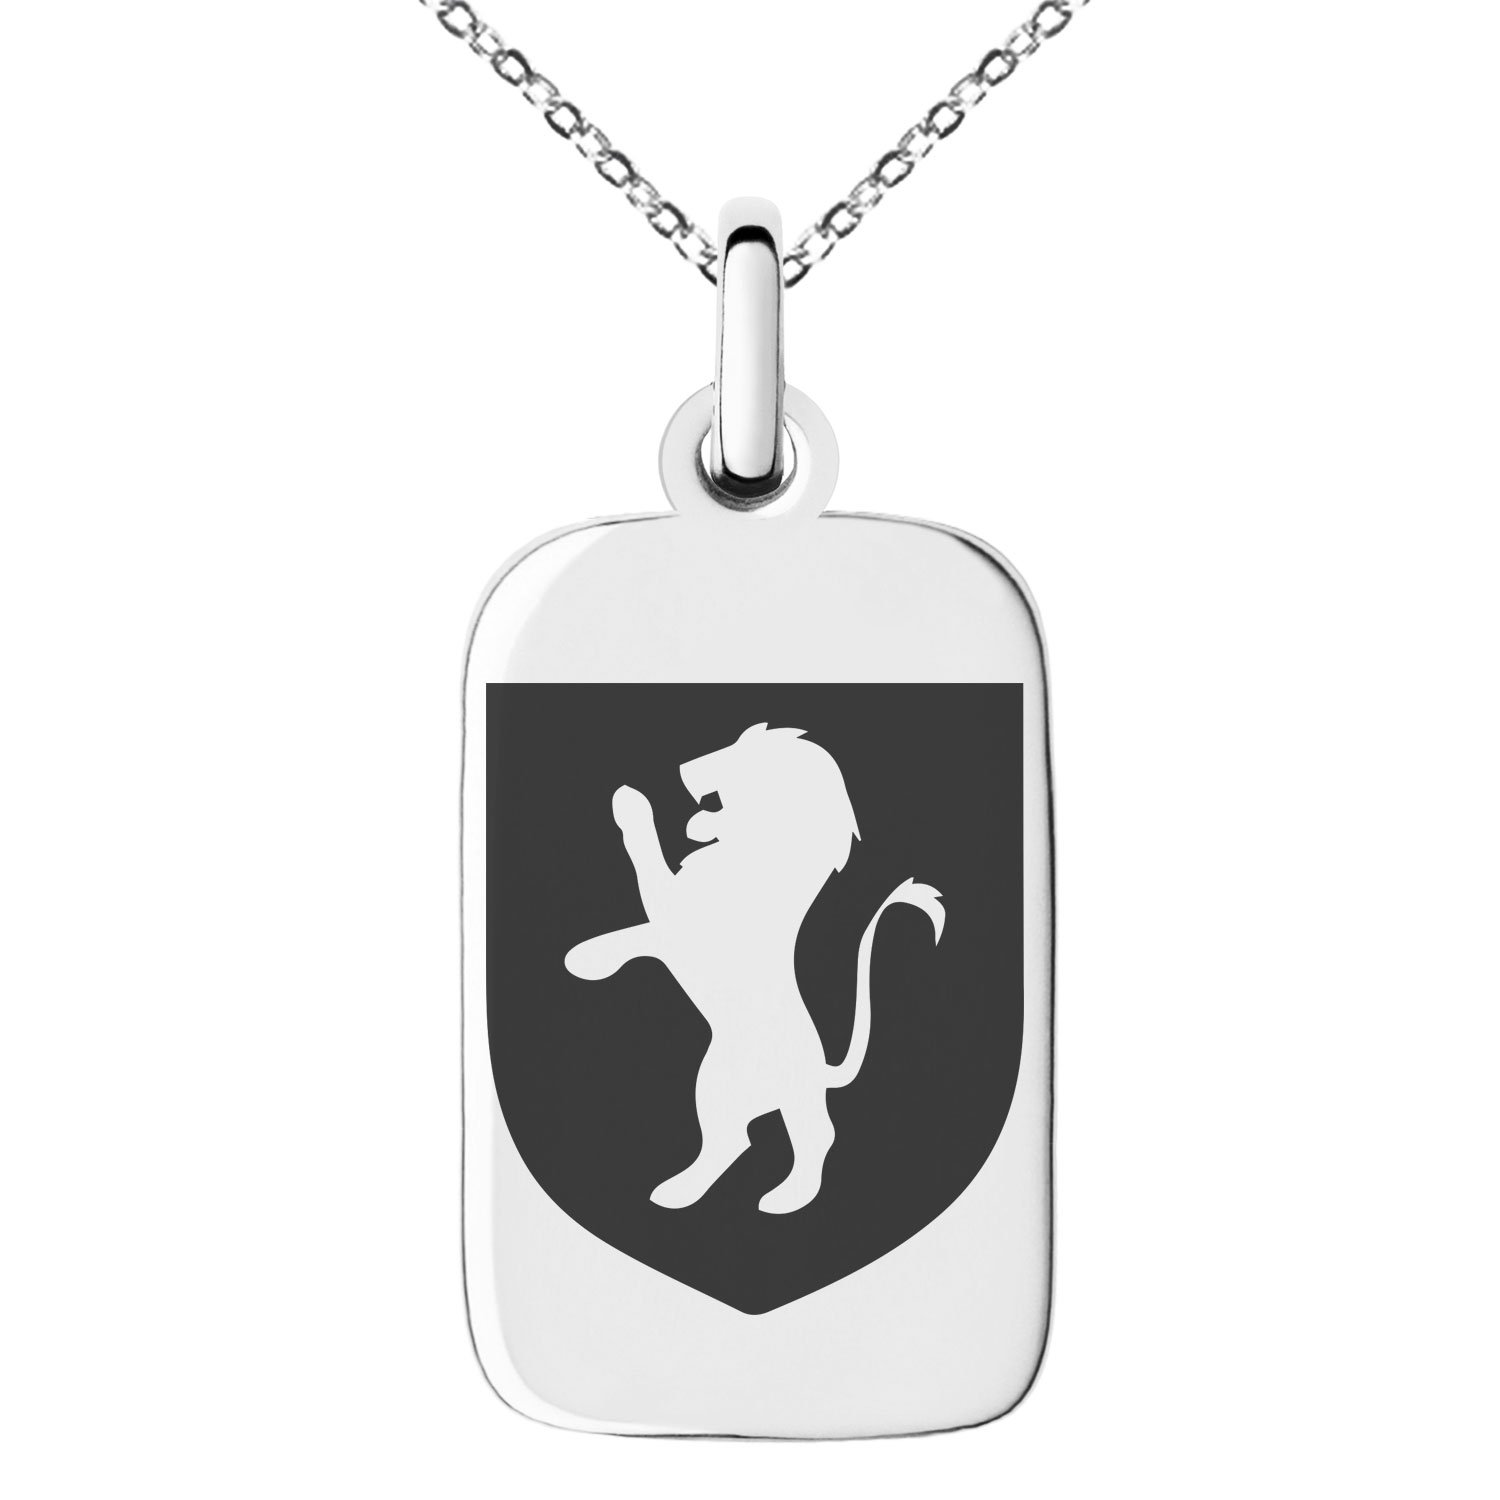 Stainless Steel Lion Courage Coat of Arms Shield Symbol Engraved Small Rectangle Dog Tag Charm Pendant Necklace